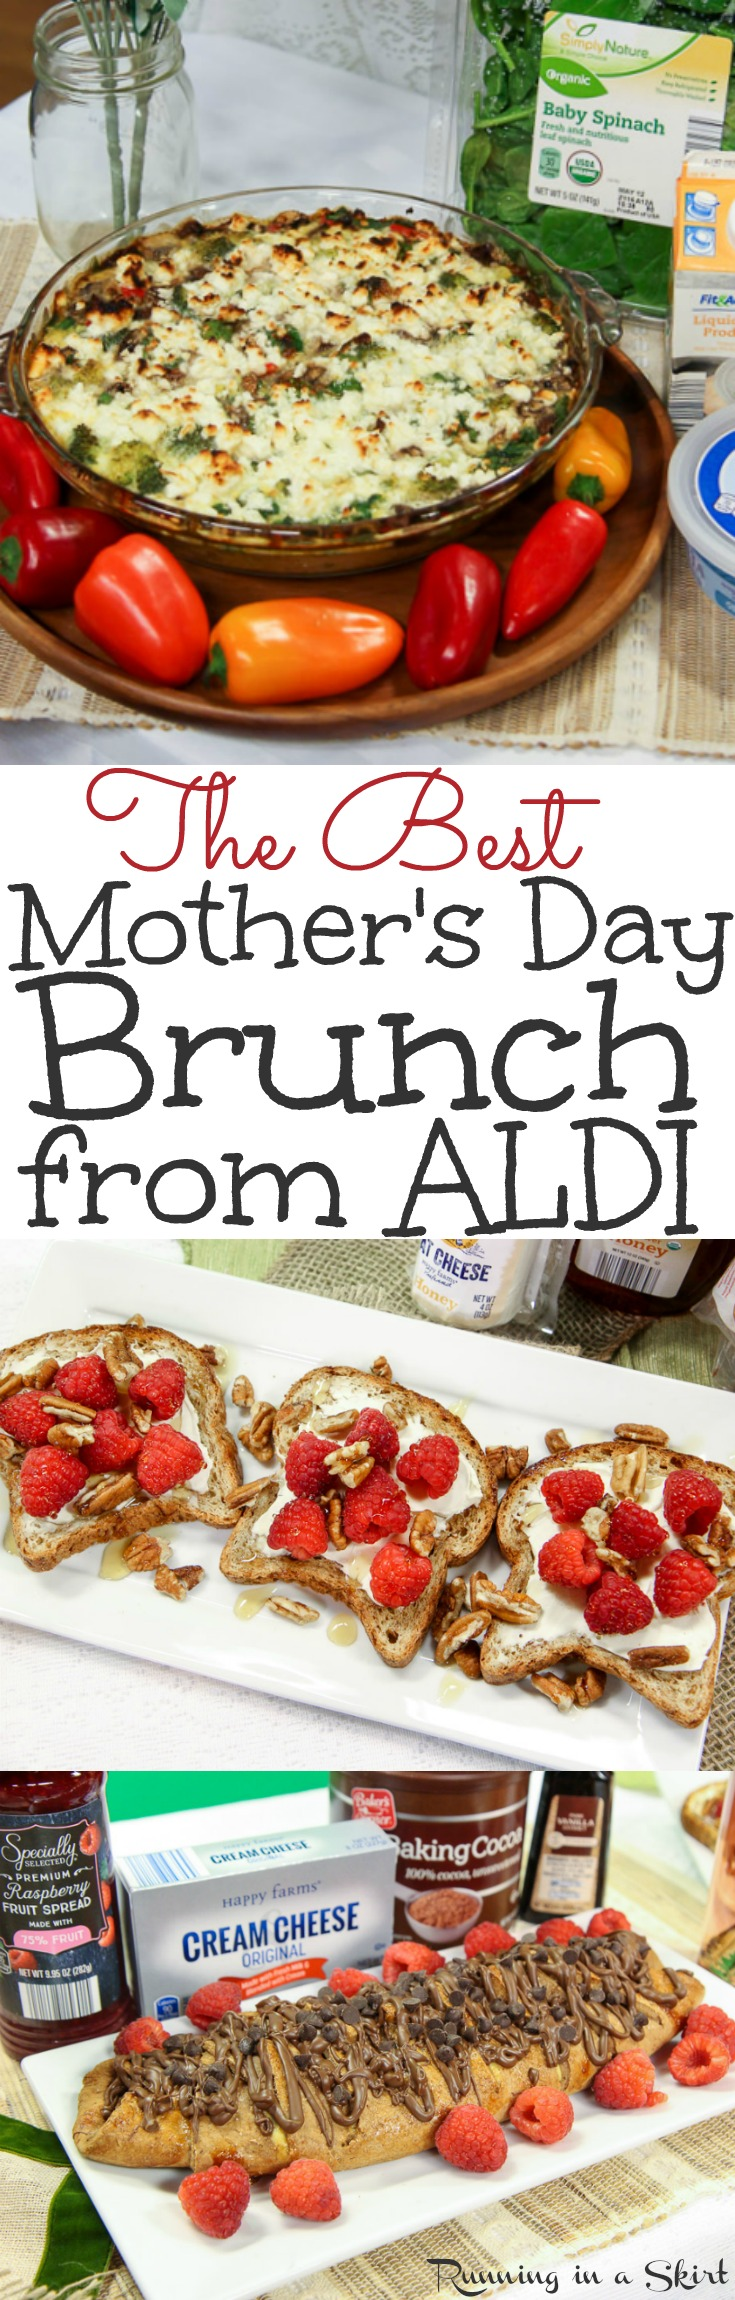 The Best Mother's Day Brunch recipes and ideas.  Includes awesome decorations for cute buffet food and an easy, healthy menu from ALDI.  Also has drinks like a mimosa bar plus simple savory make ahead eggs casseroles, toast and dessert.  Vegetarian option included. / Running in a Skirt  via @juliewunder